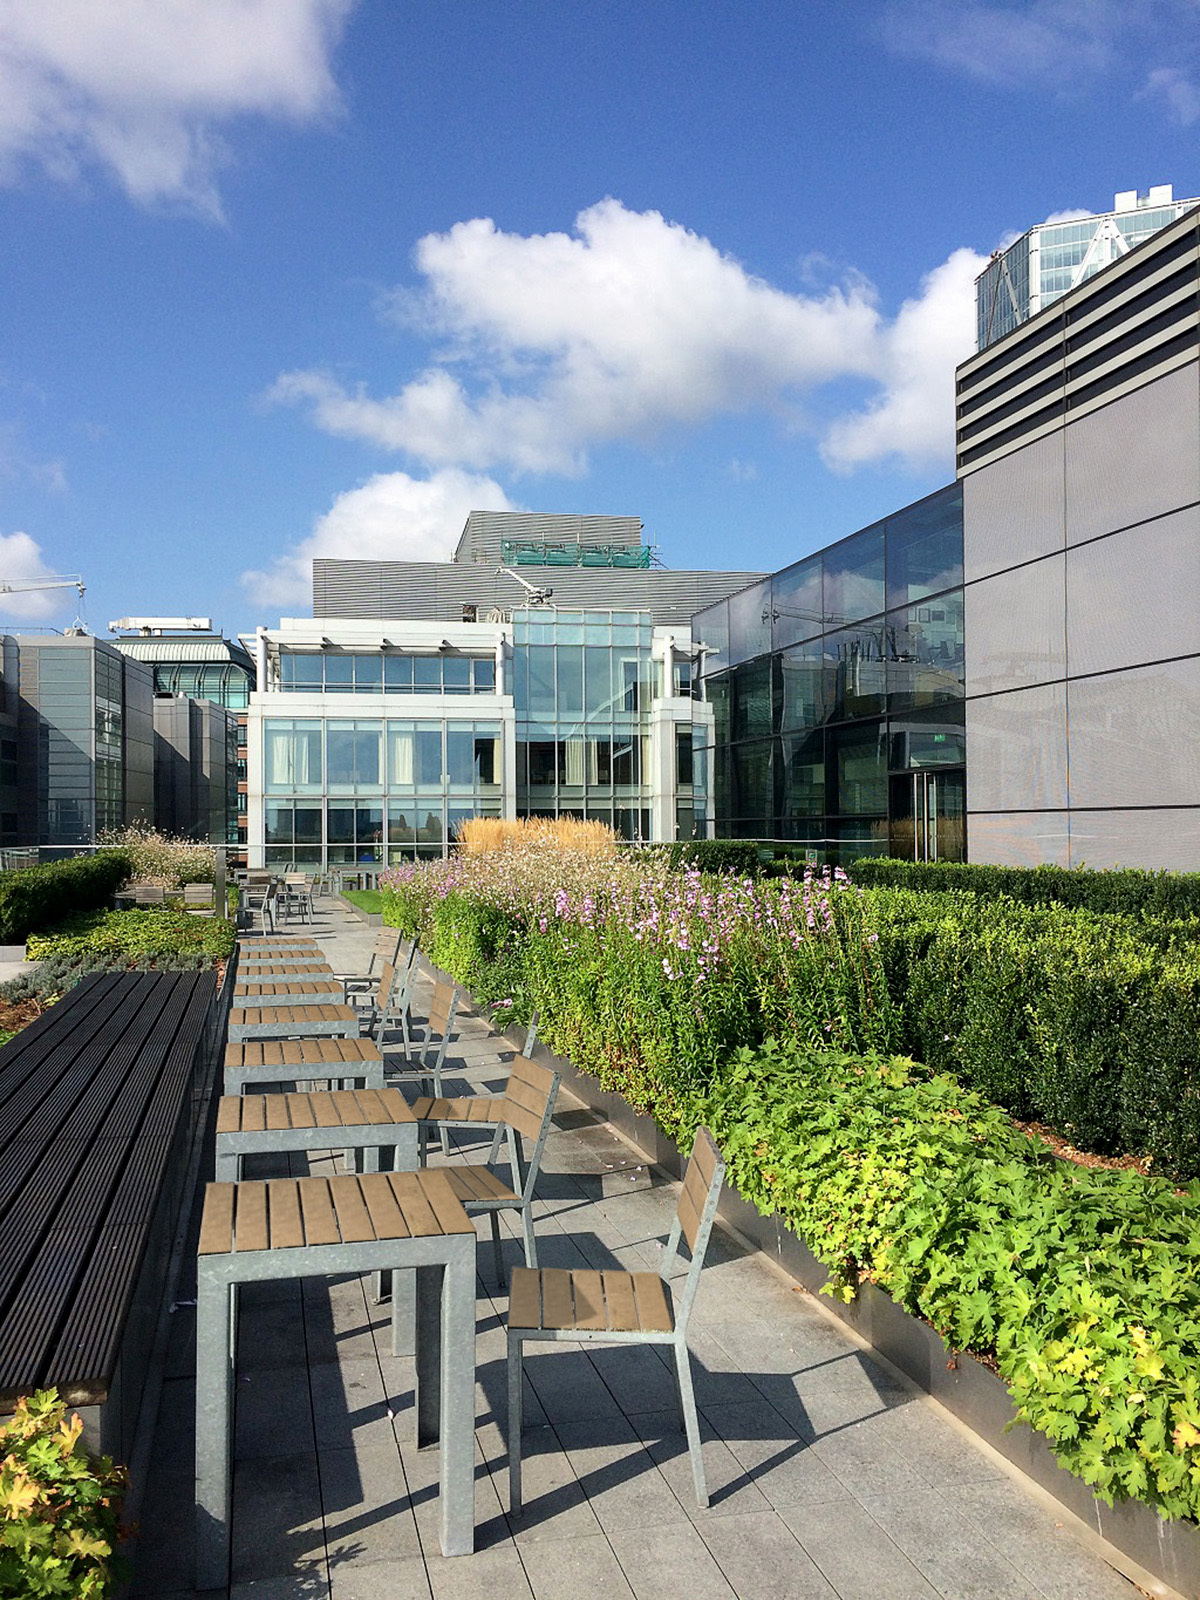 Allen & Overy, Office Headquarters Terrace by Design: Fosters and Partners